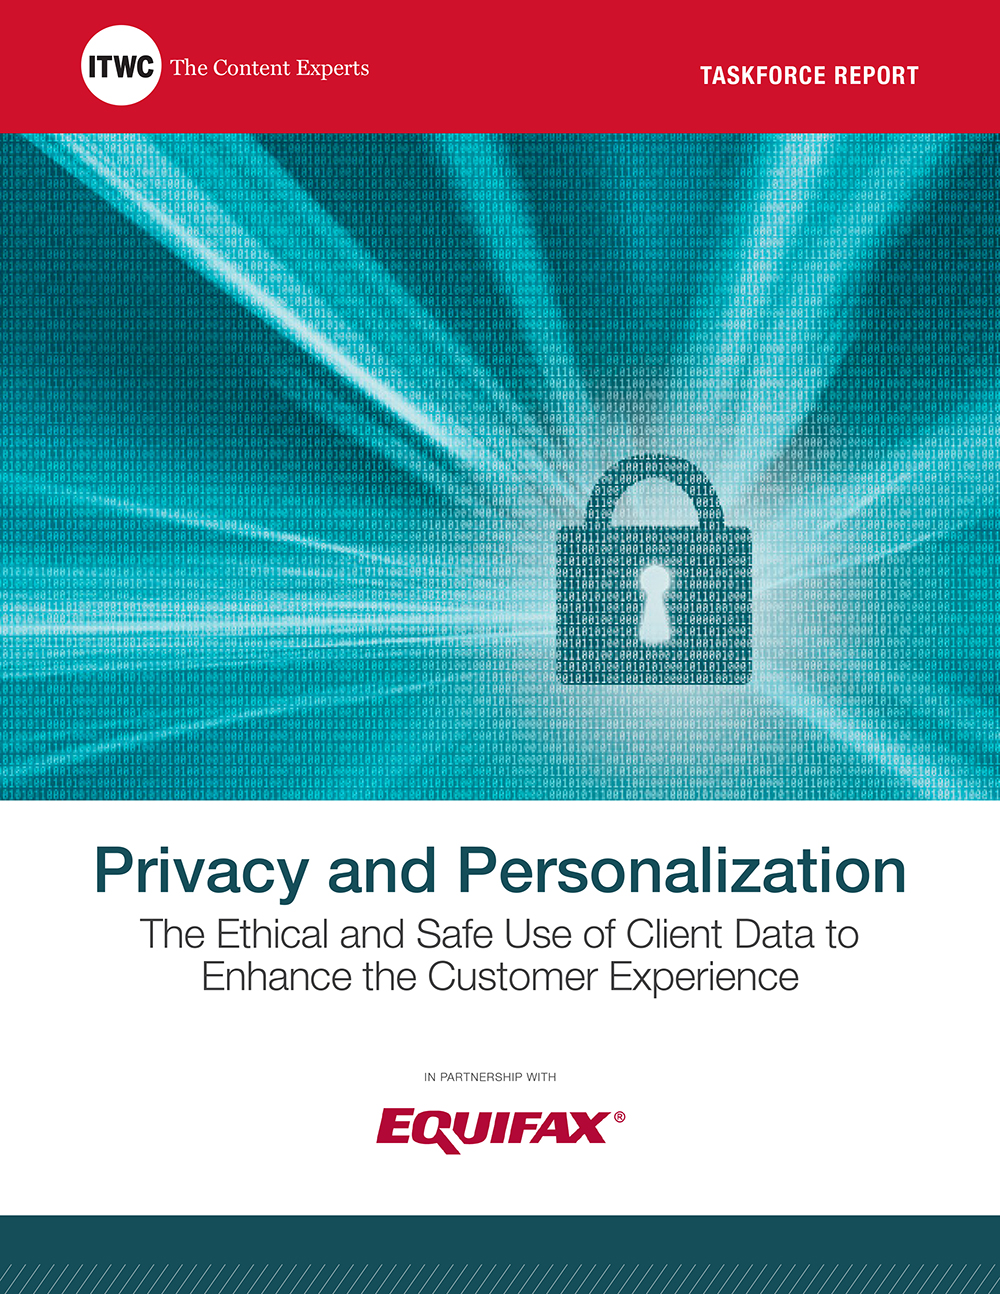 Privacy and Personalization: The Ethical and Safe Use of Client Data to Enhance the Customer Experience